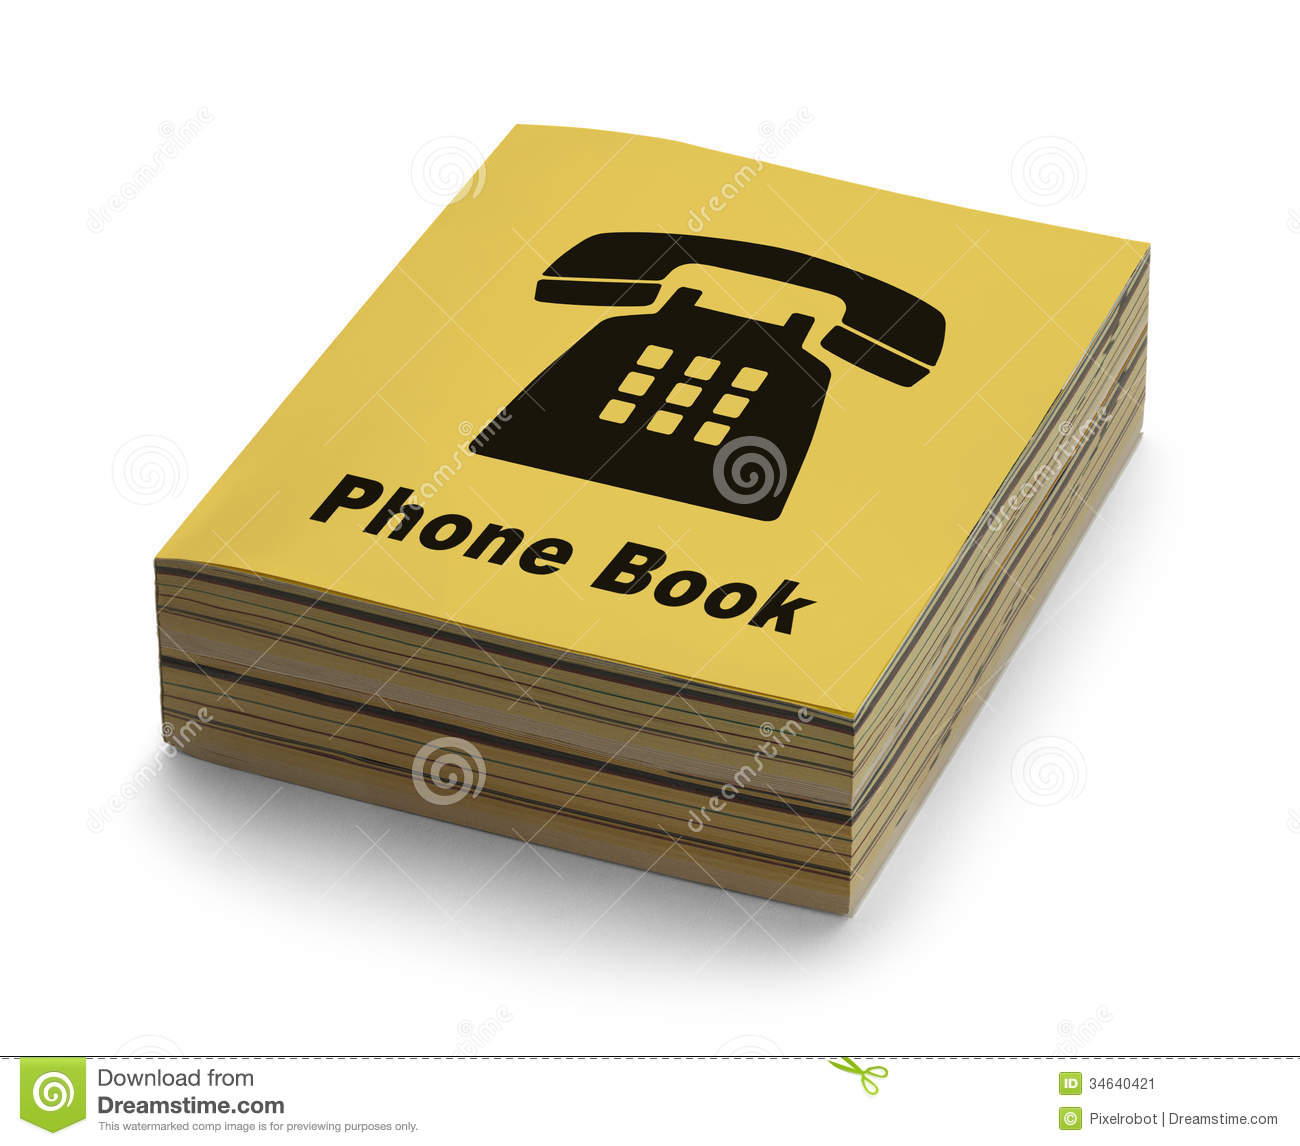 Book With Black And Yellow Cover : Phone book stock image